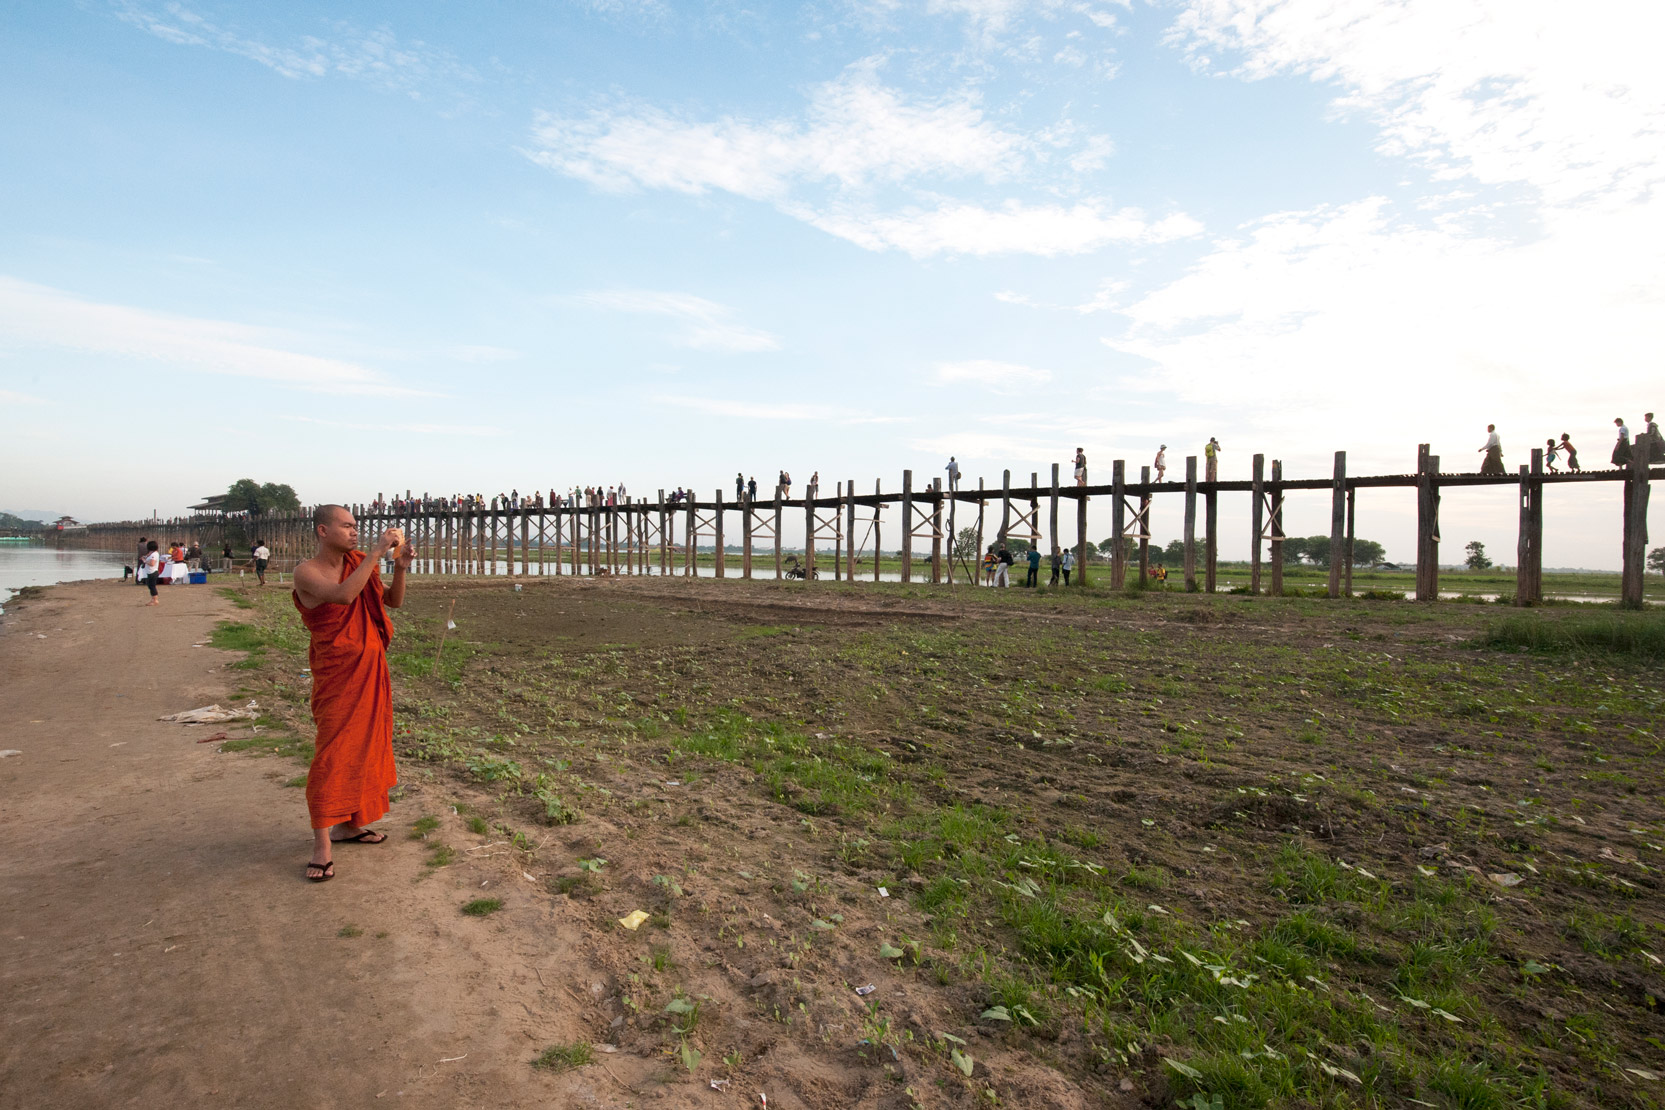 Orange robed monk photographing people crossing U Bein's Bridge, supported by 984 teak posts over Thaumthaman Lake, Mandalay.